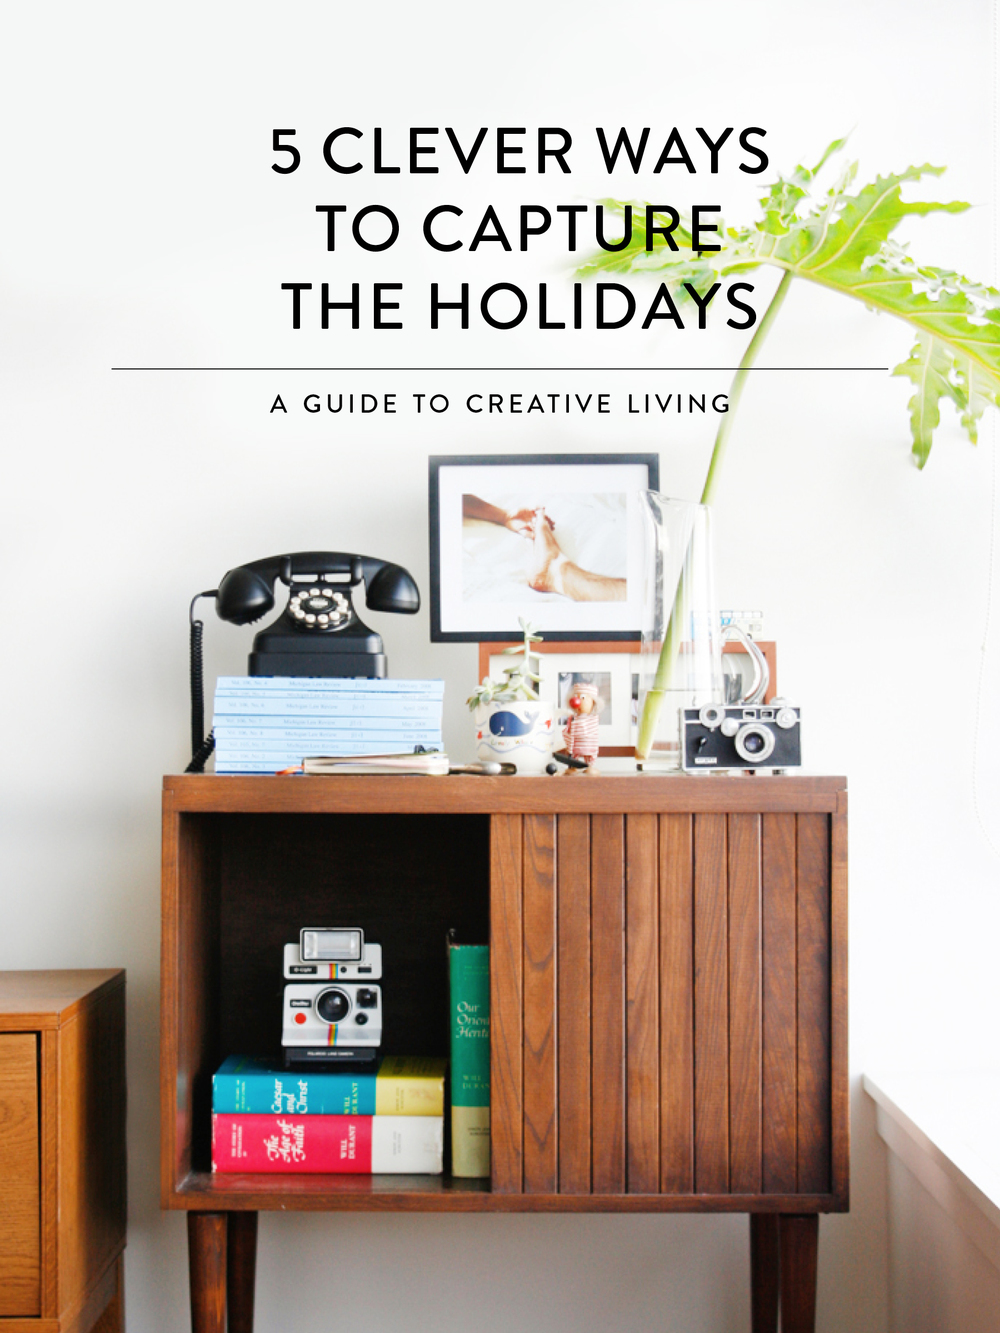 5 Clever Ways to Capture the Holidays